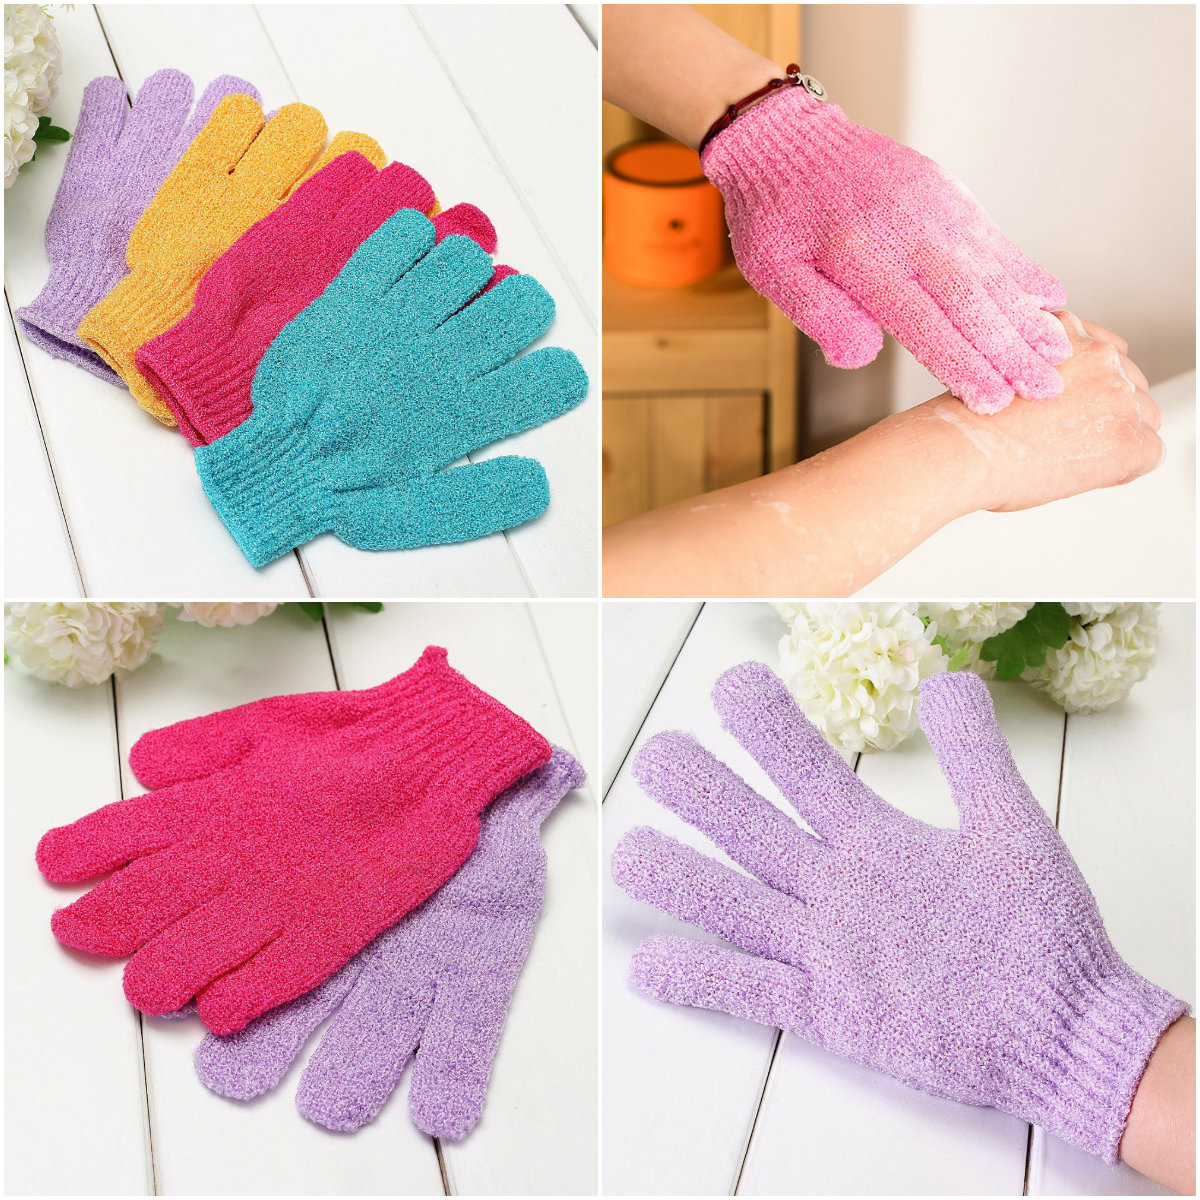 1pc Scrubber Skid Resistance Body Massage Exfoliating Sponge Gloves Shower Exfoliating  Foam Cleaning Spa Bath Accessories